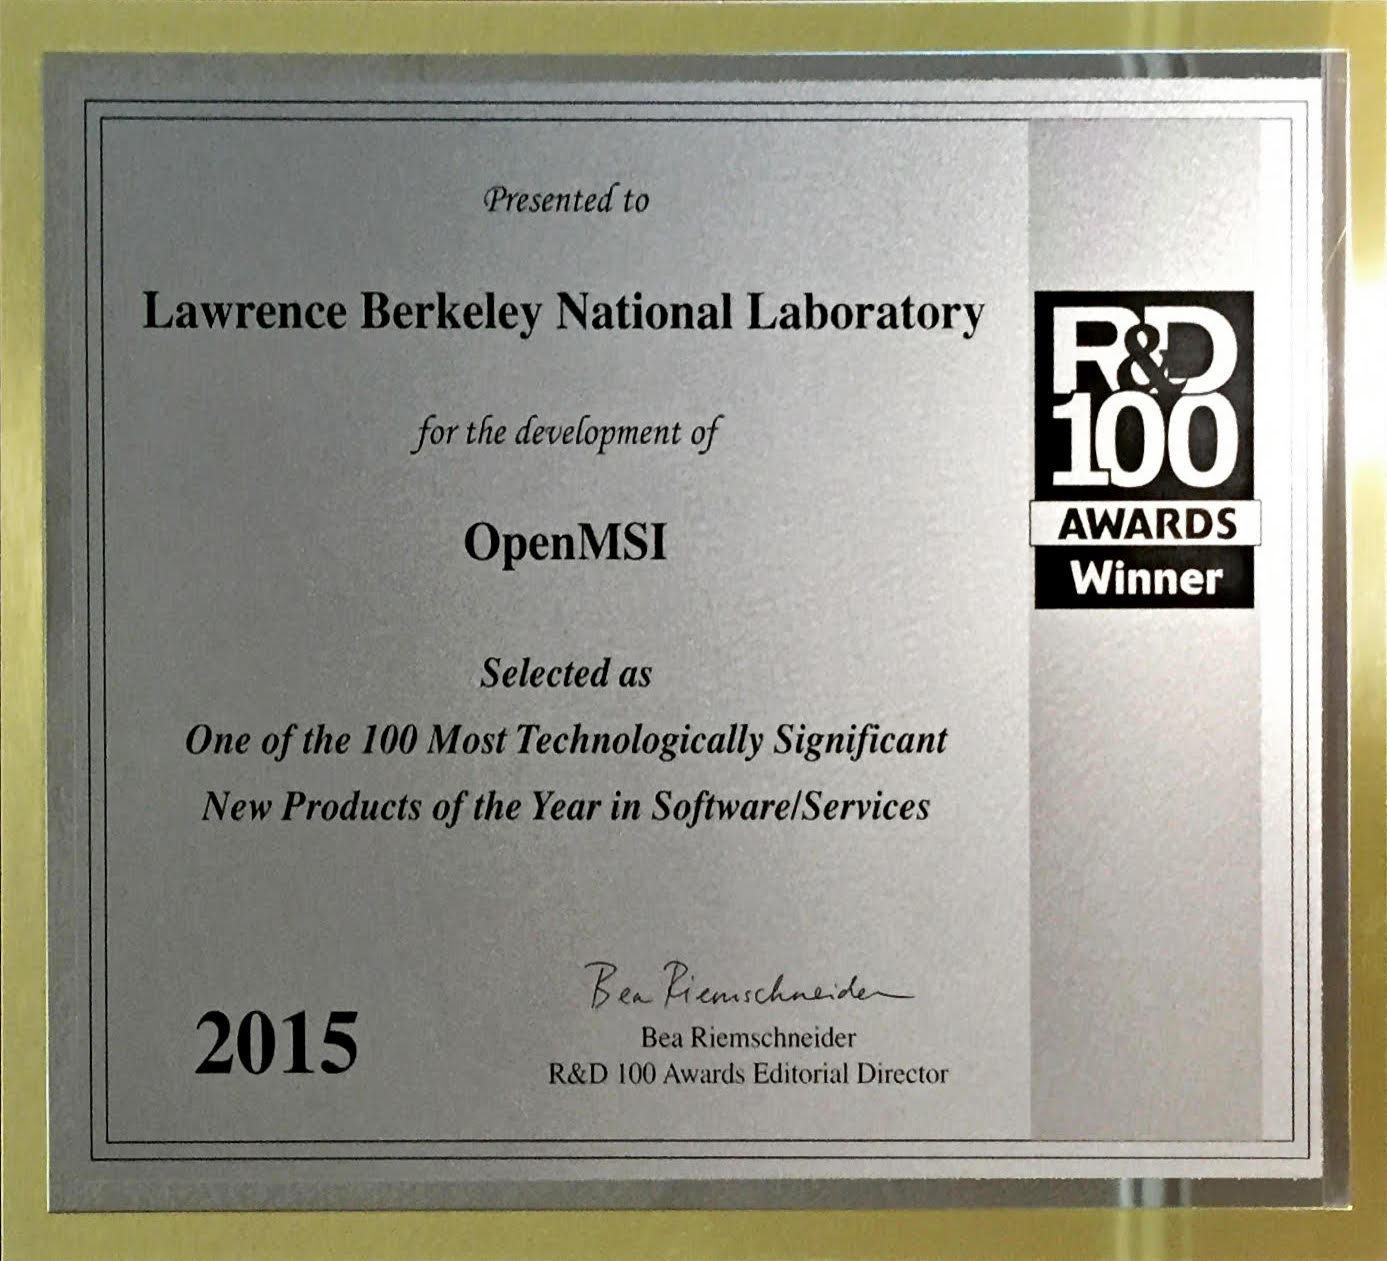 OpenMSI Receives R&D 100 Award